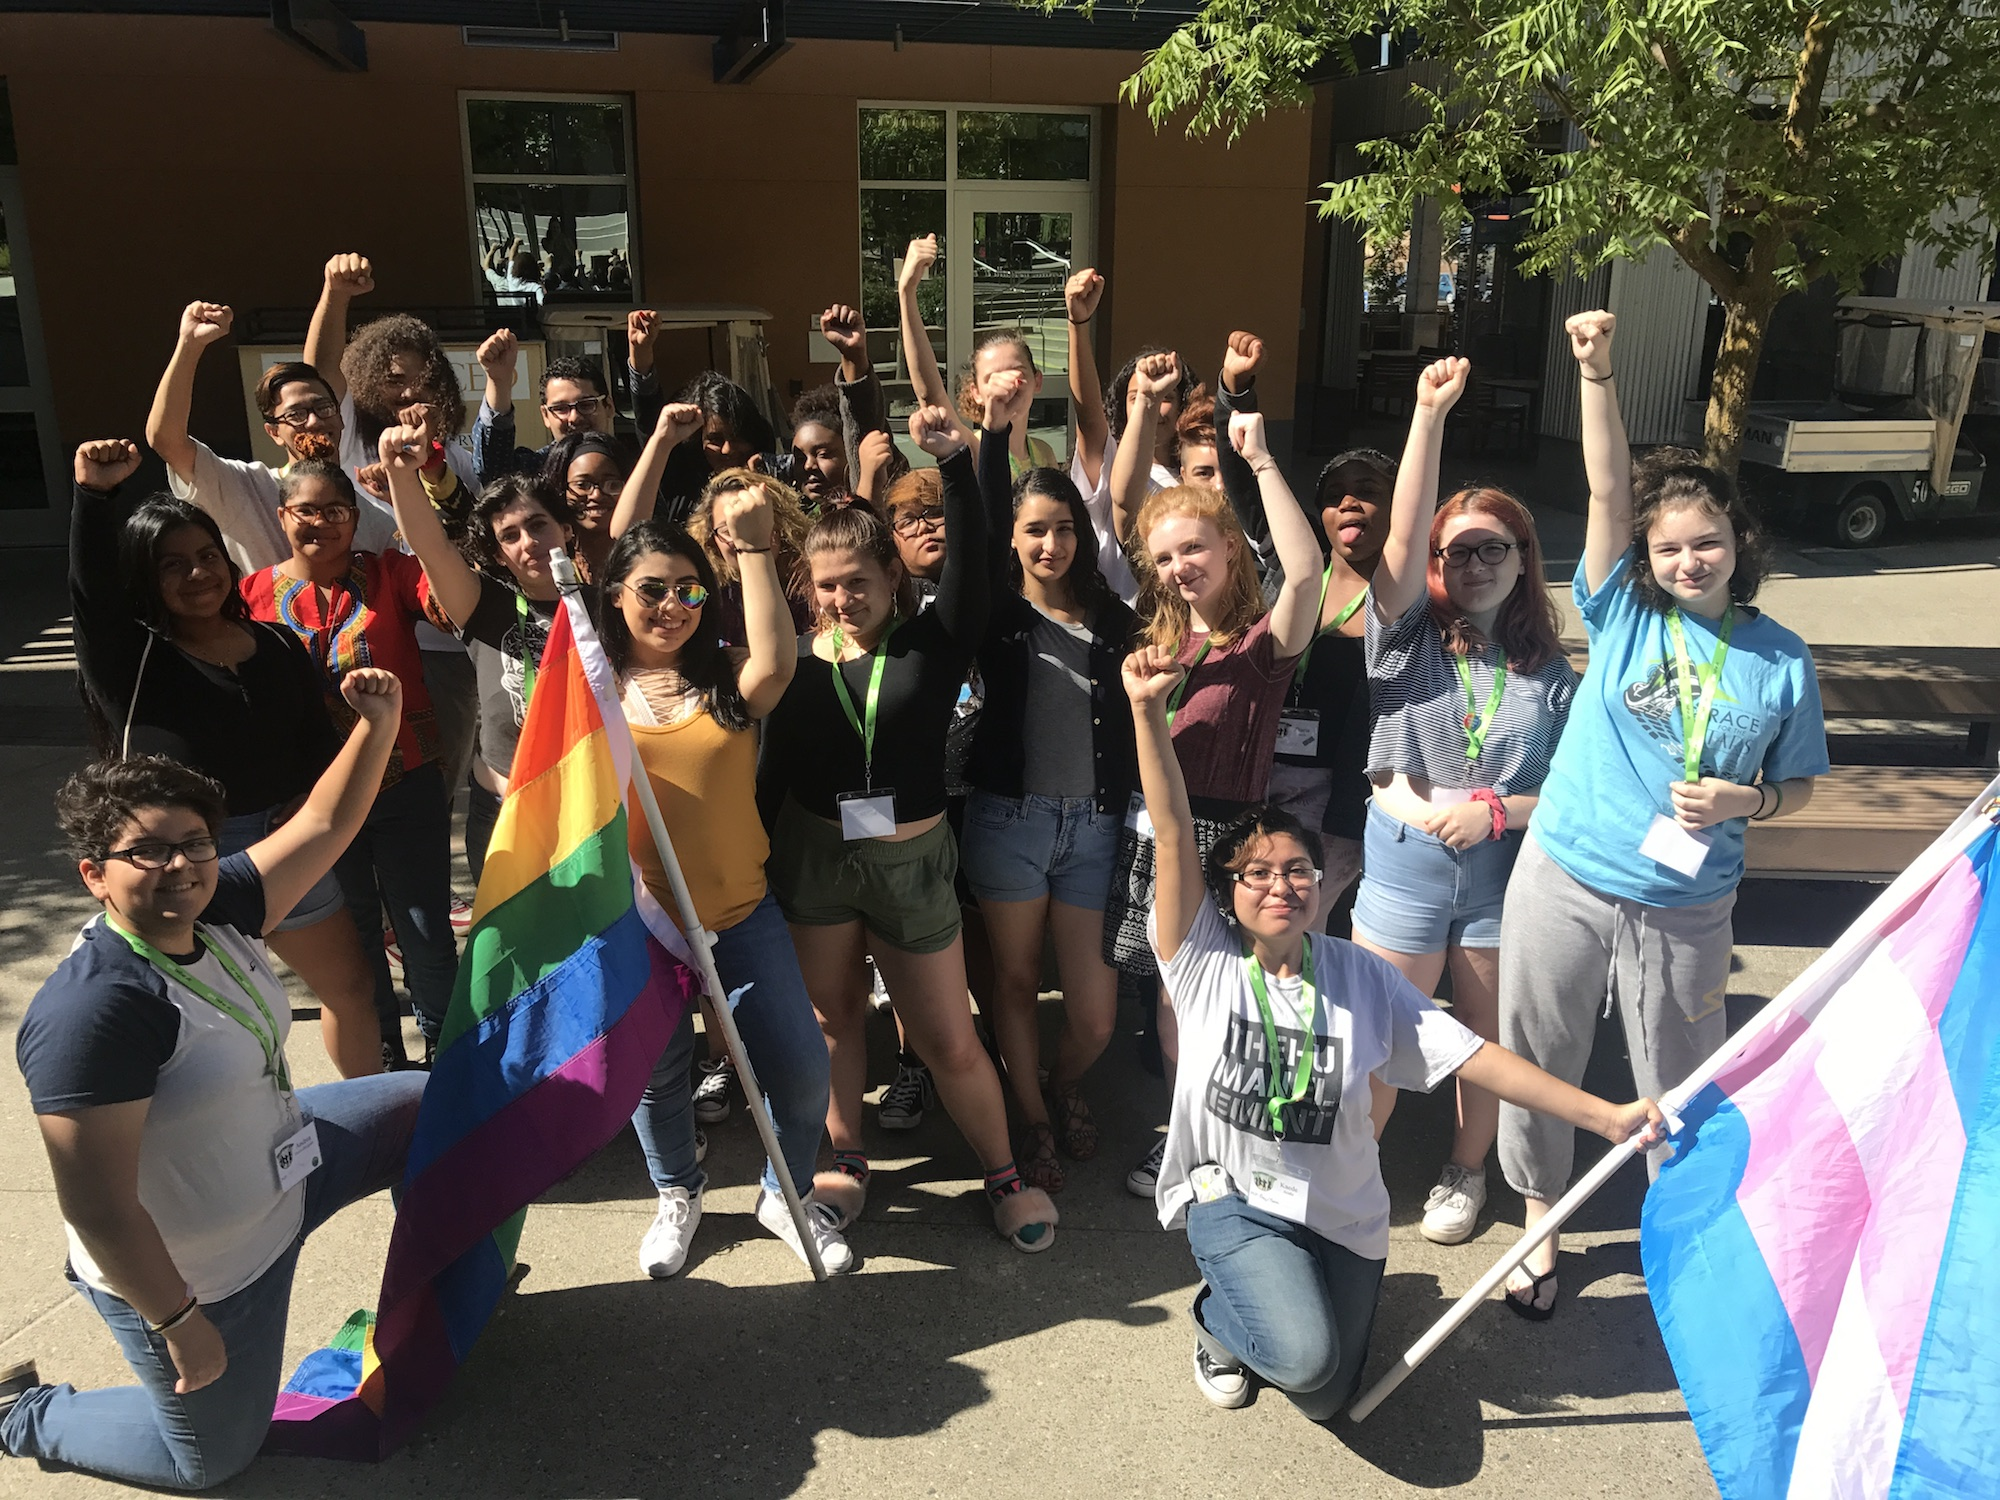 Group of trans and queer young people holding a rainbow pride flag and trans pride flag with fists in the air